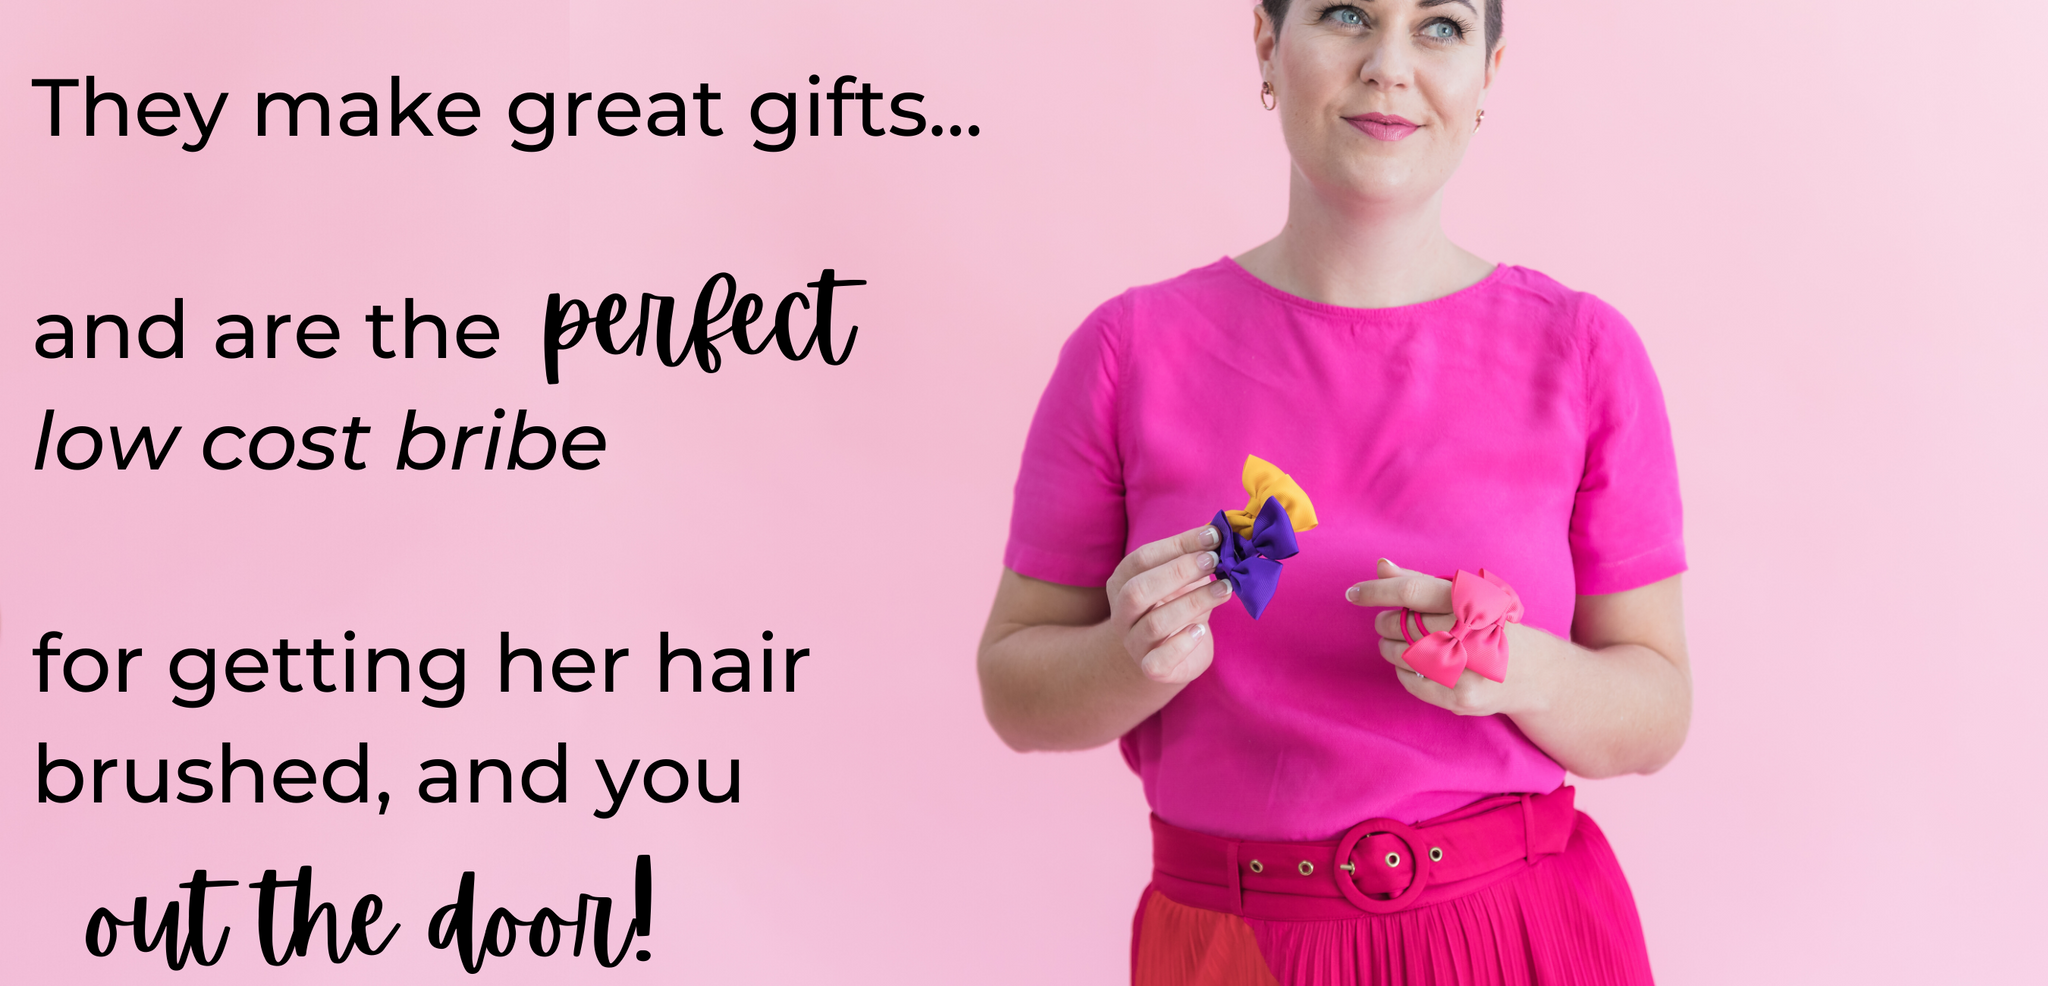 Top sellers that make great gifts, and perfect low cost bribes to get her hair brushed and you out the door